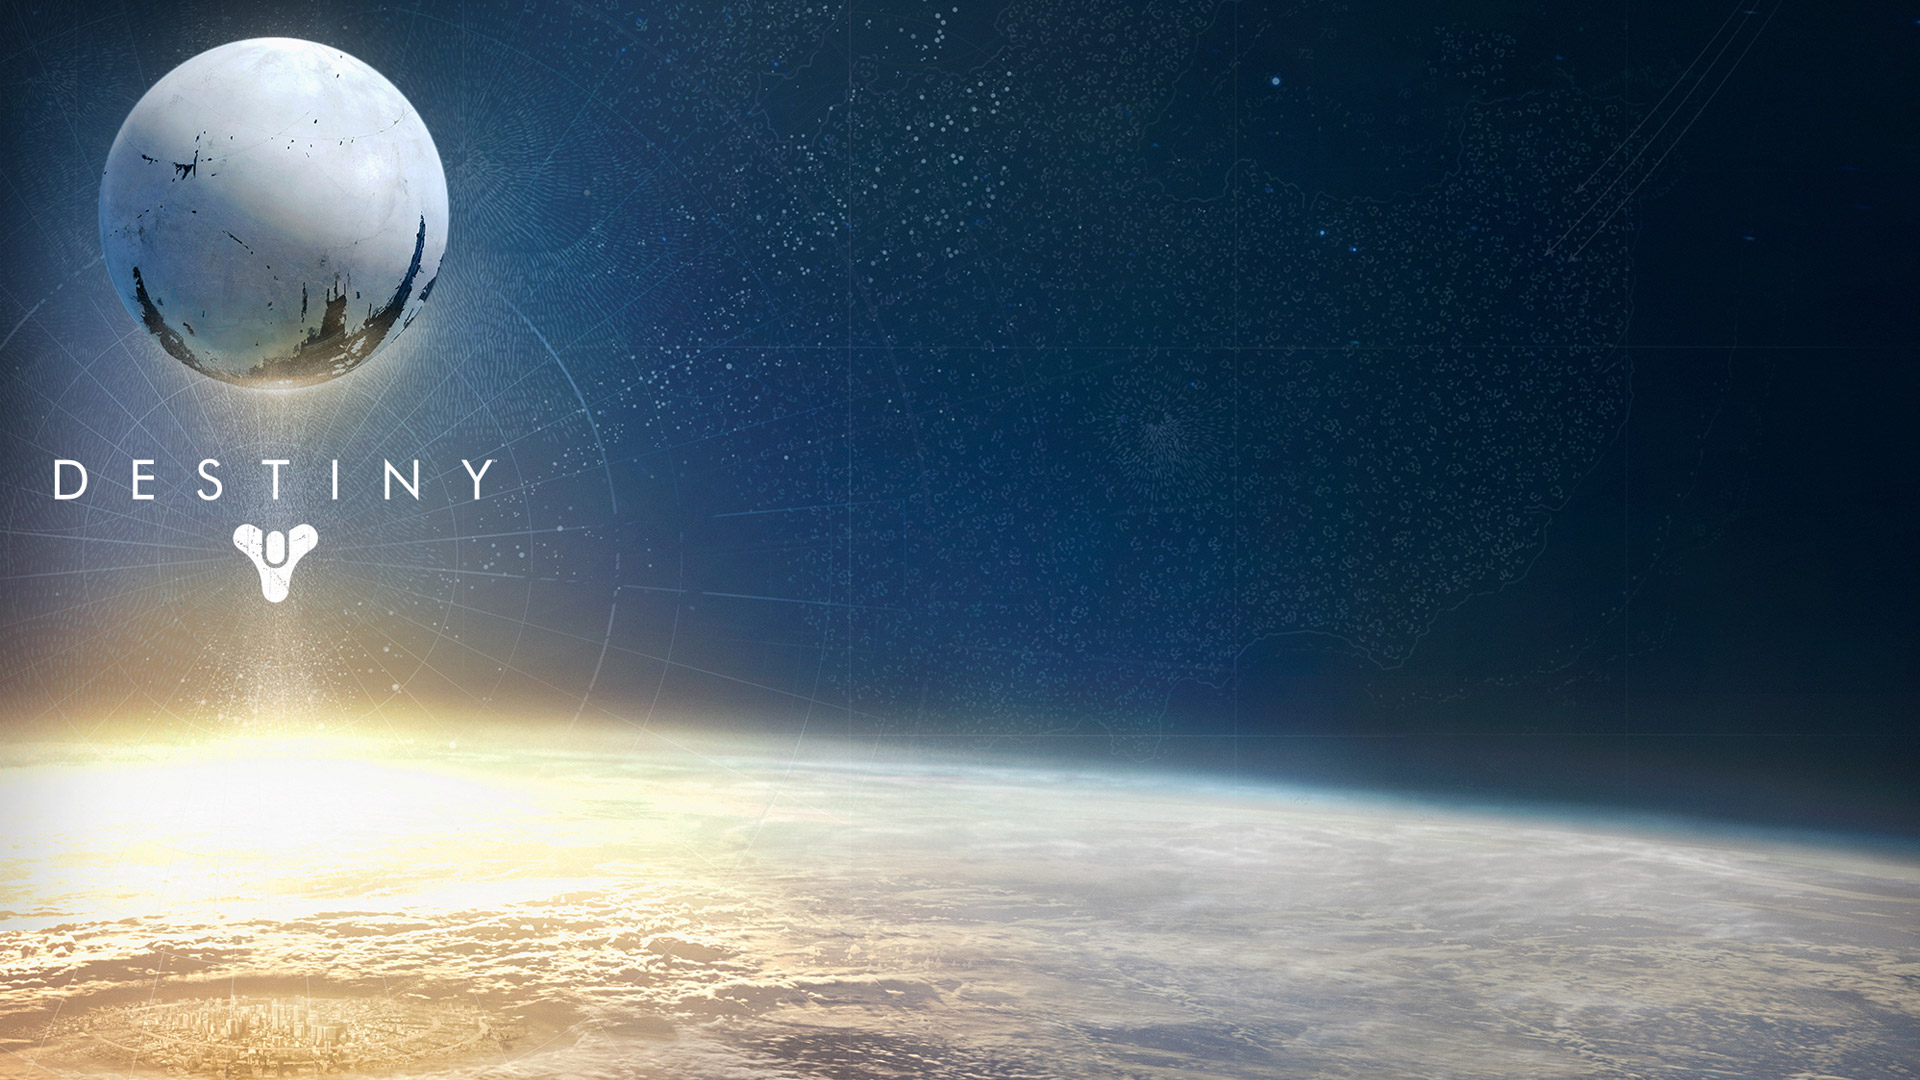 Download Destiny HD Wallpapers For Your Desktop Free